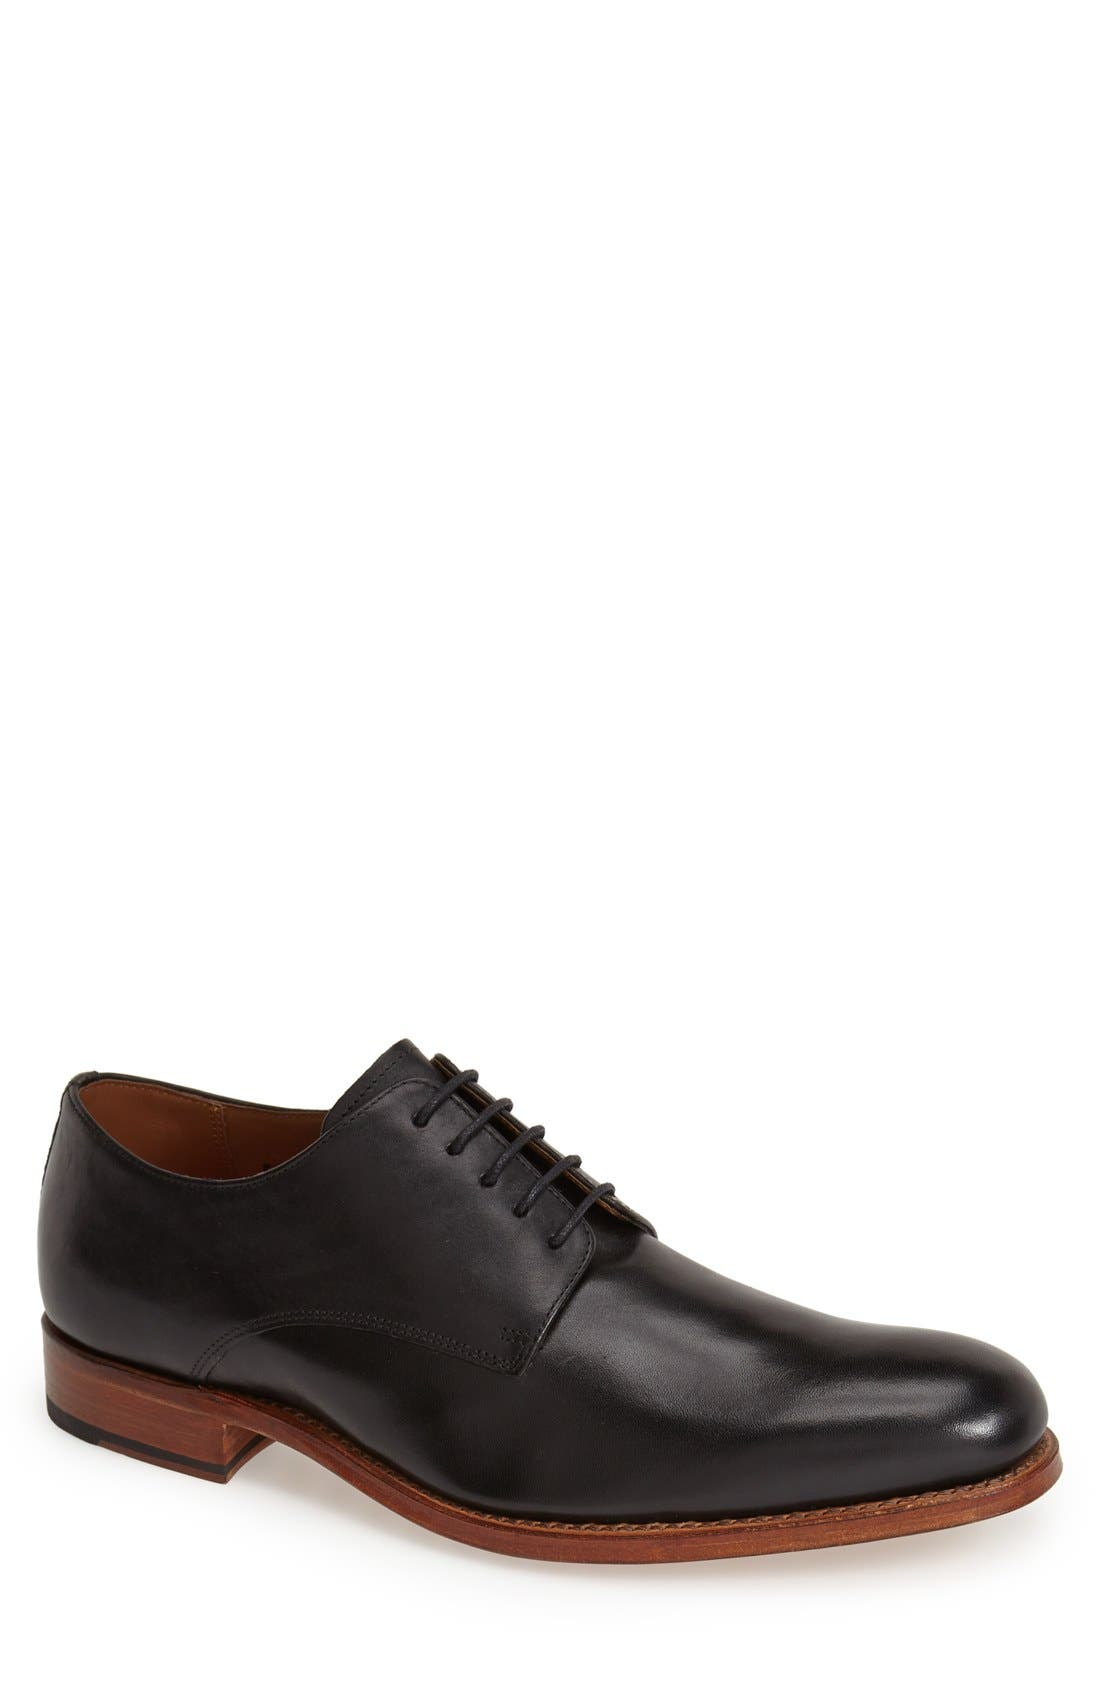 GRENSON 'Toby' Leather Plain Toe Derby, Main, color, 001